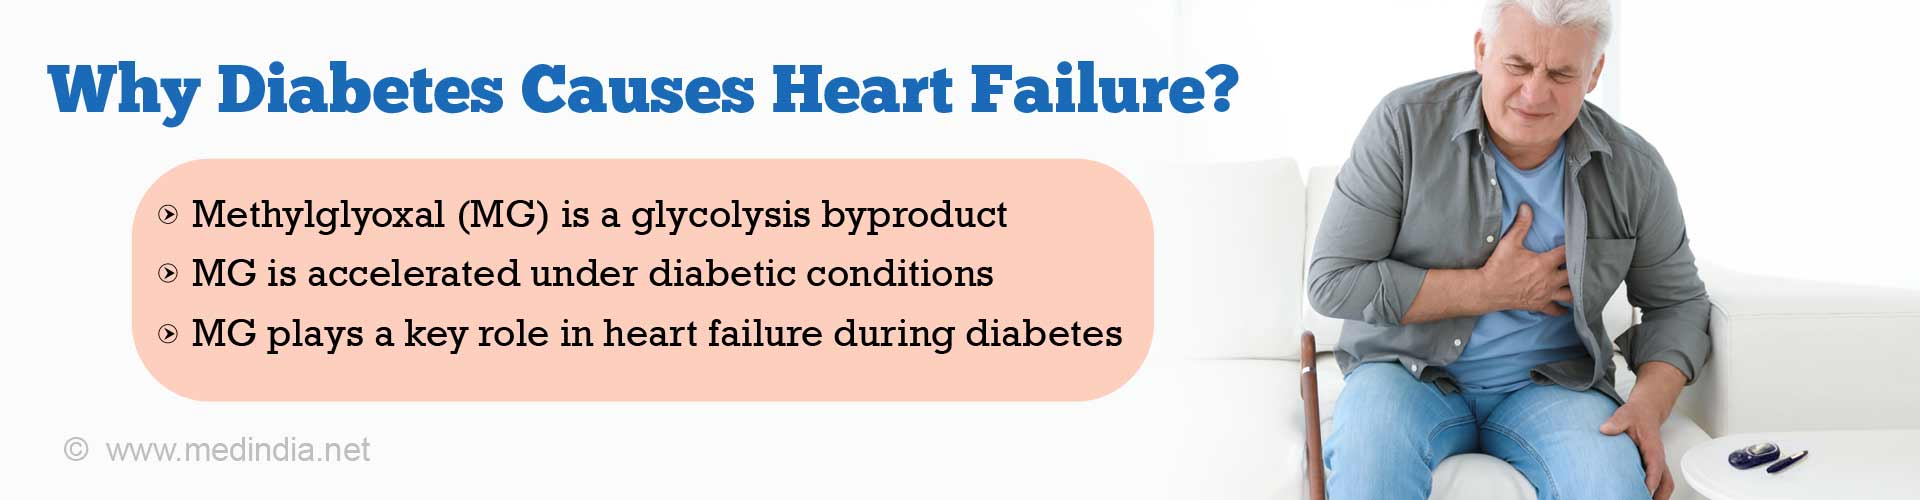 Diabetes May Cause Heart Failure: Here's Why